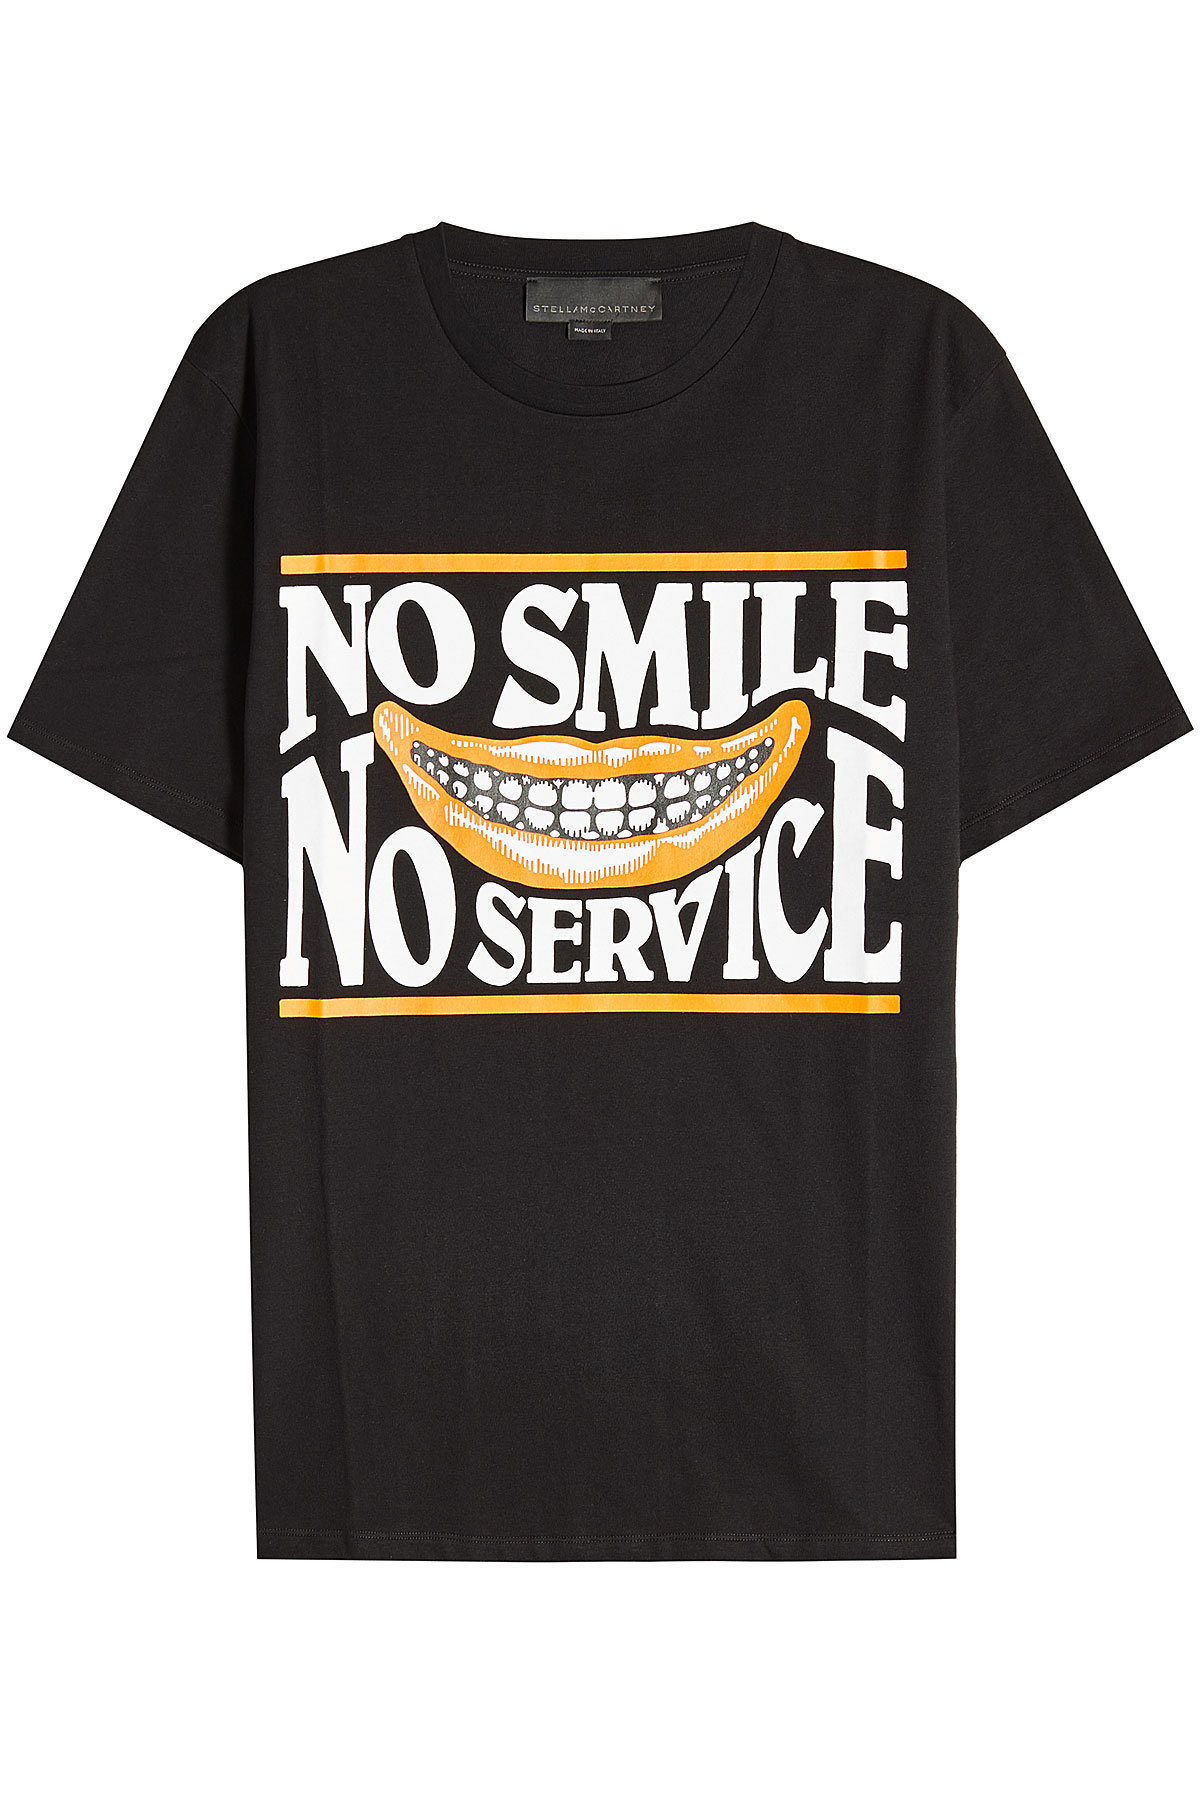 No Smile No Service Cotton T-Shirt | STELLA MCCARTNEY